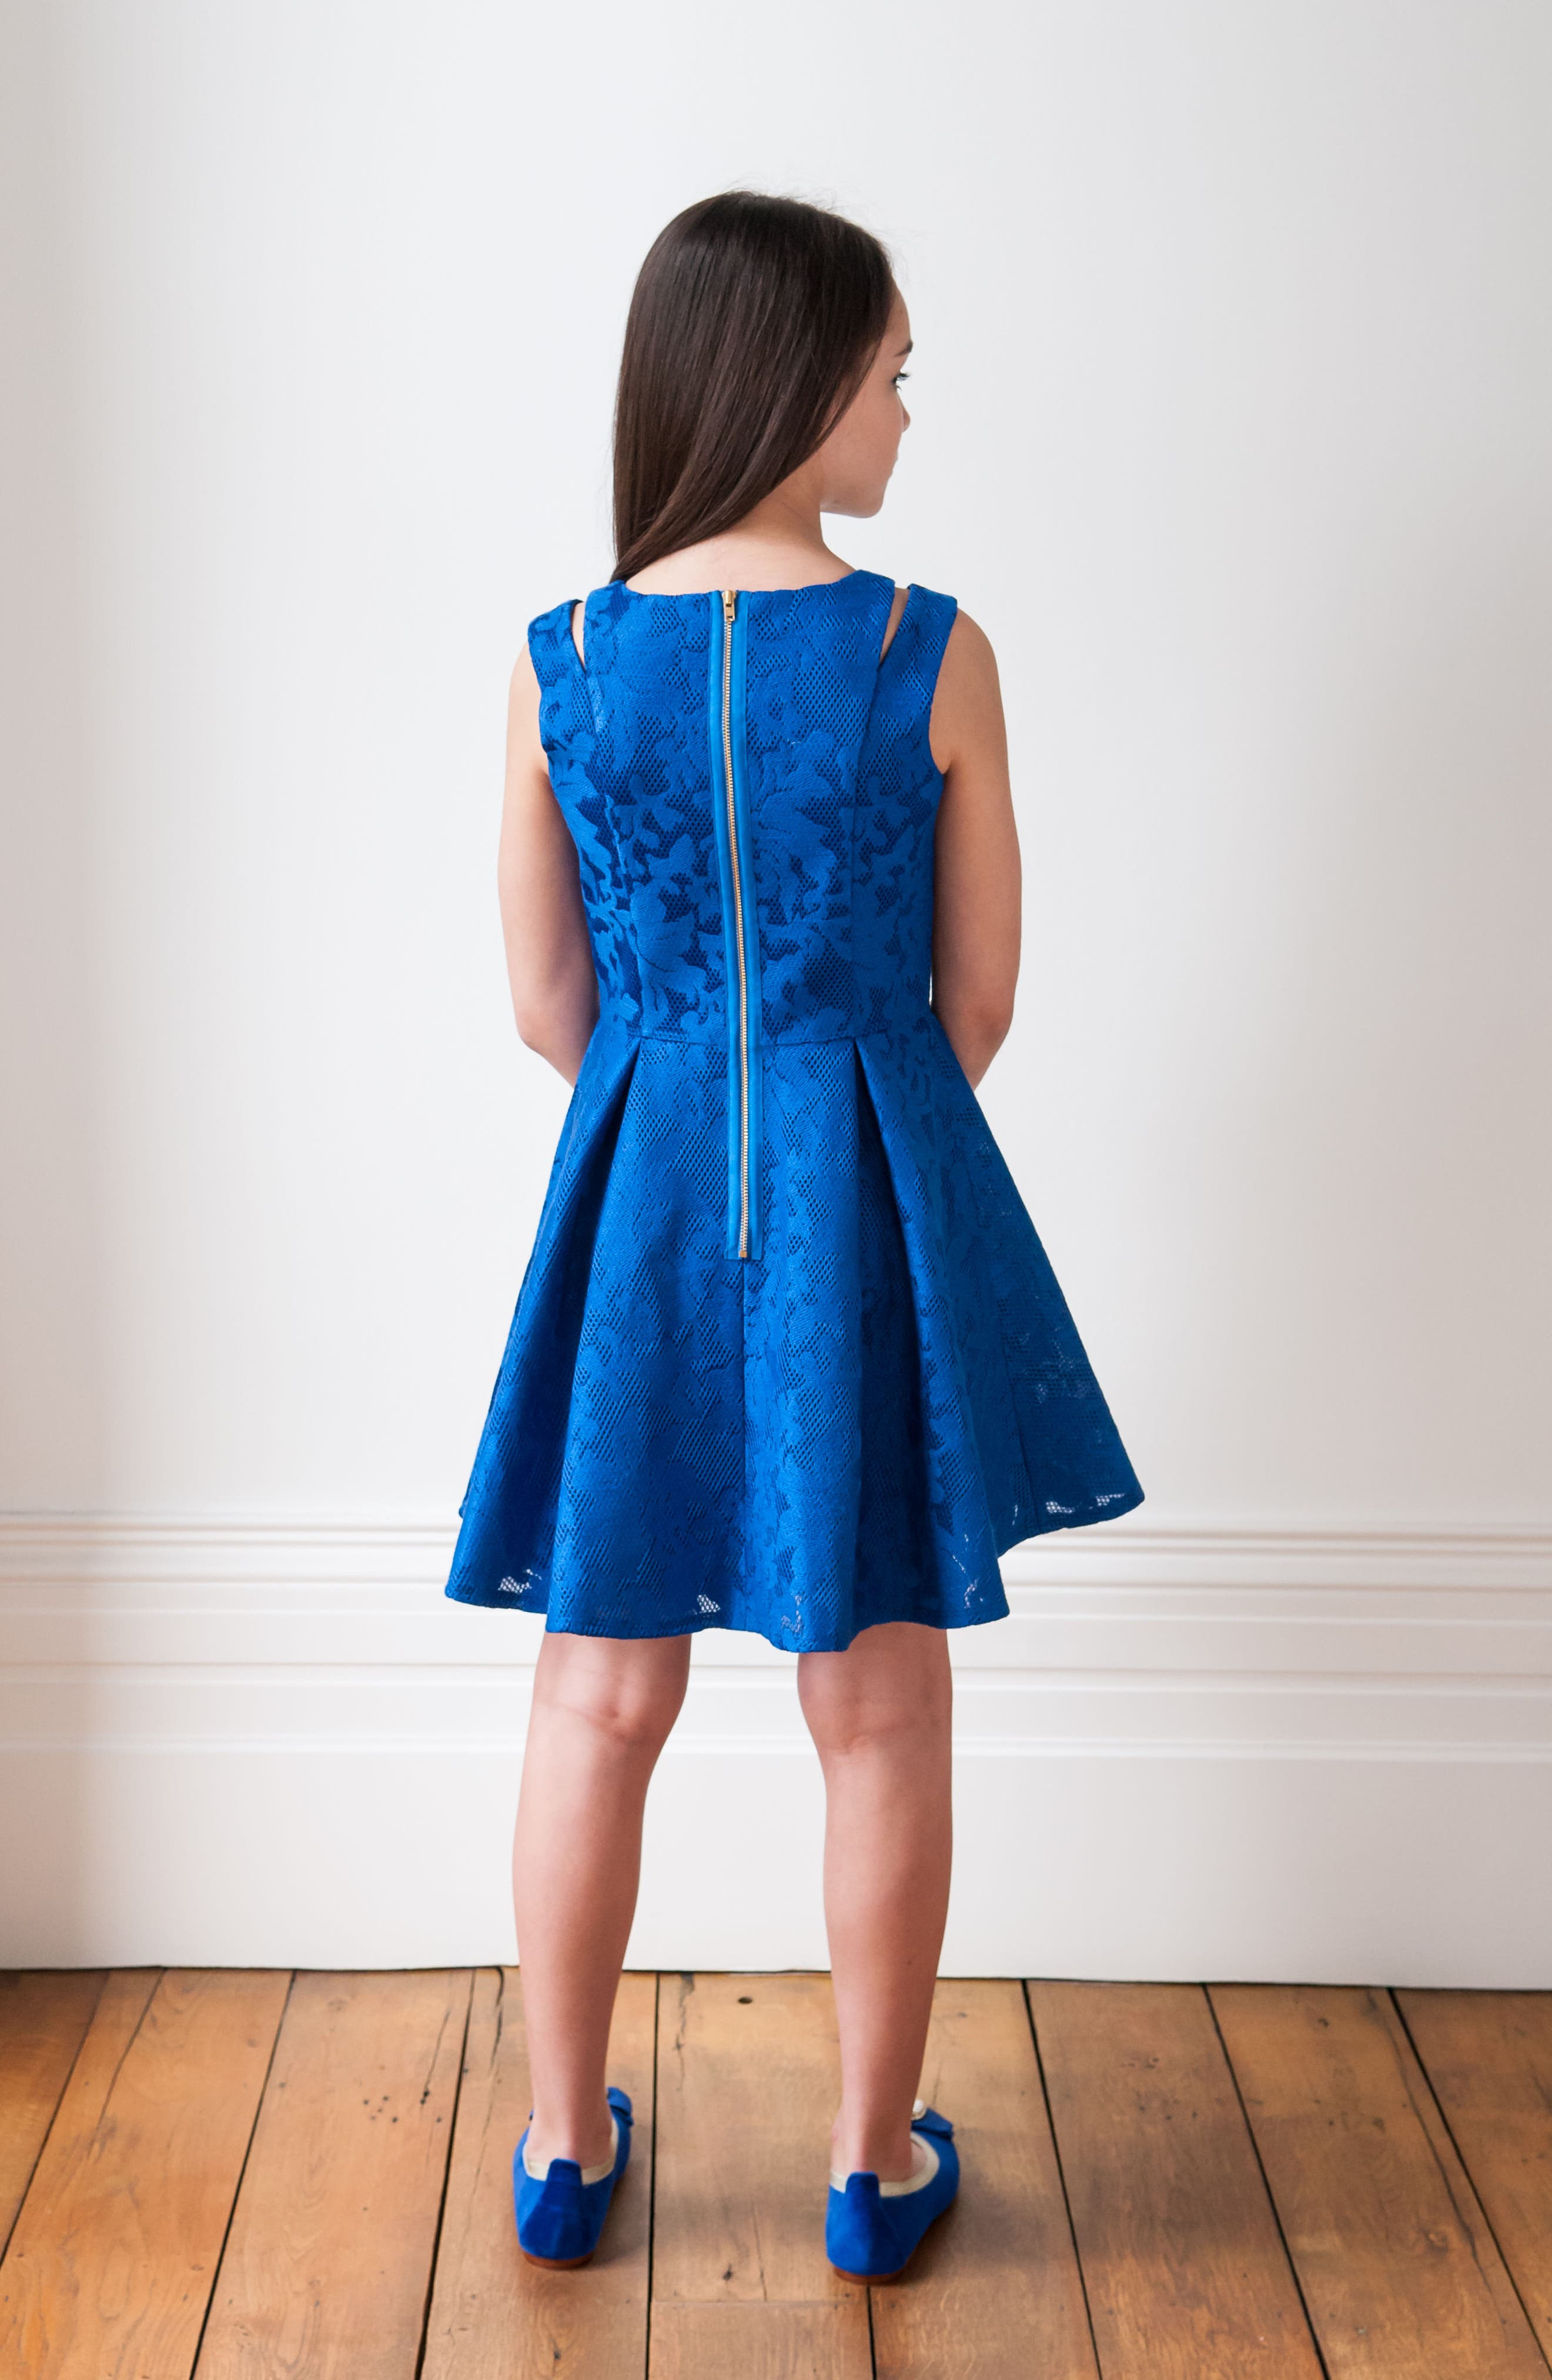 Embroidered Techno Dress,                             Alternate thumbnail 5, color,                             430